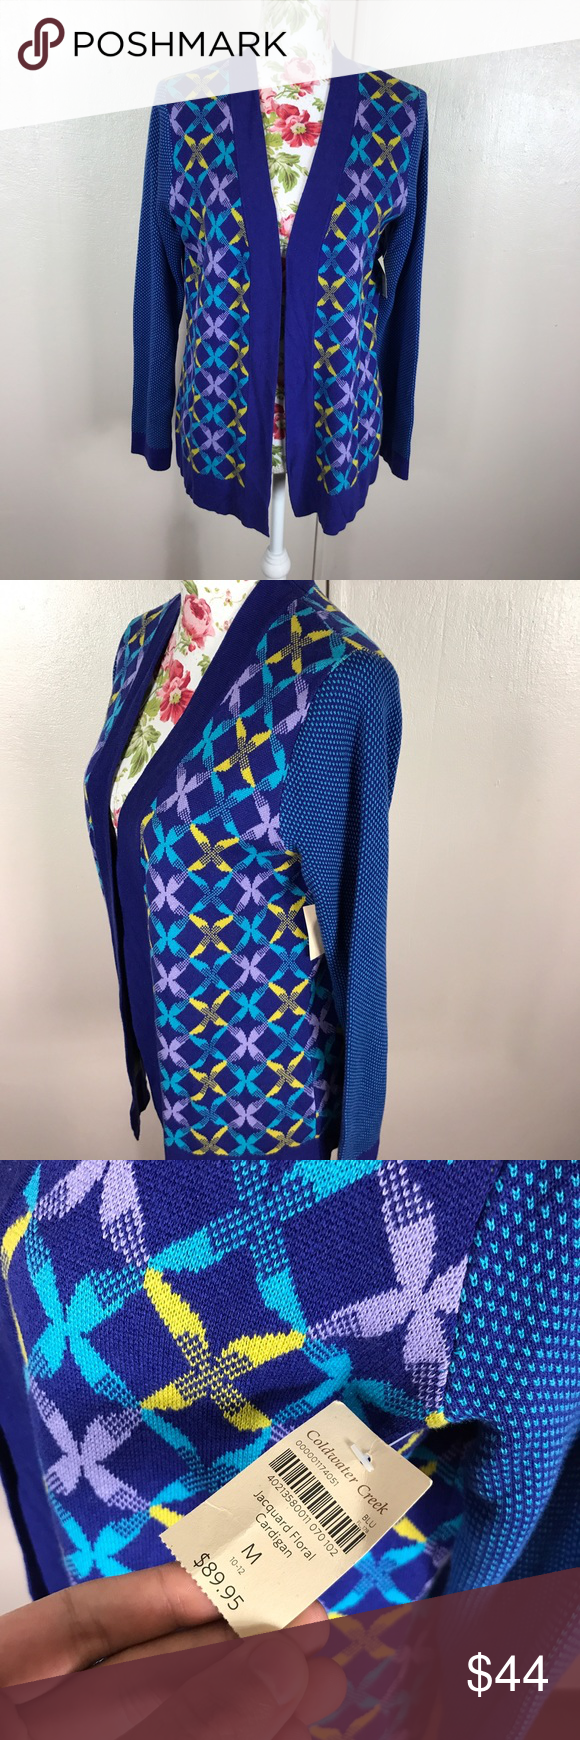 Open floral cardigan Coldwater creek medium New with tags. Coldwater creek open jaquard floral cardigan. Multicolored. 60% cotton 40% rayon Coldwater Creek Sweaters Cardigans